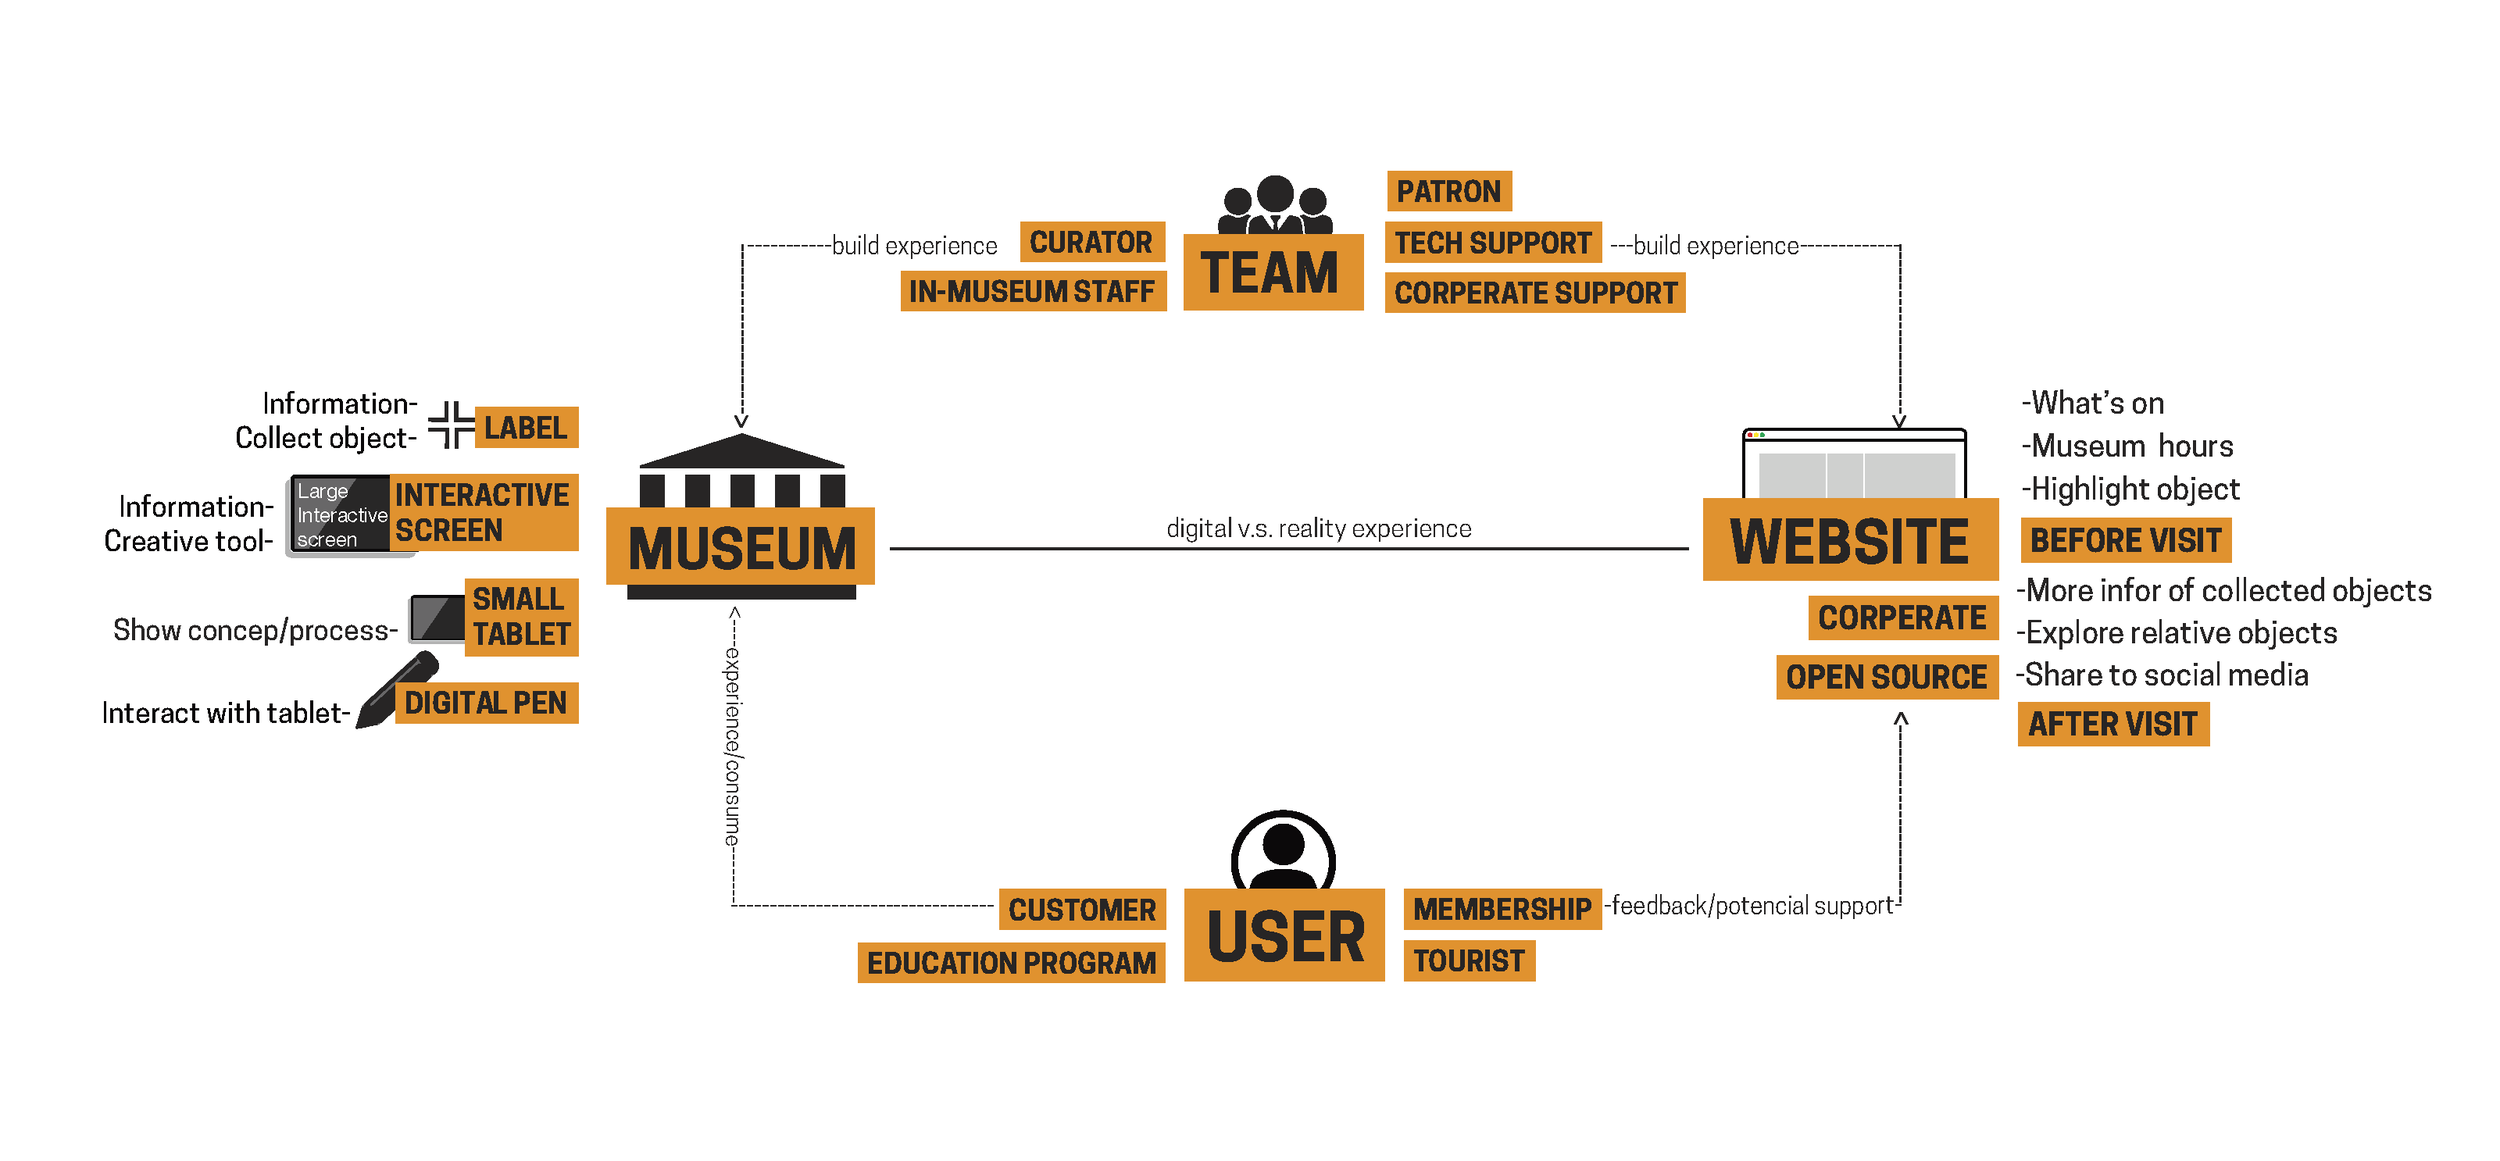 This is a user-centered system map for the Cooper Hewitt Museum. Visitors are able to access both the online digital service and local museum service. While the local museum service is considered the core experience, the online digital service plays an important role in allowing visitors to learn more both before and after their trip to the museum.